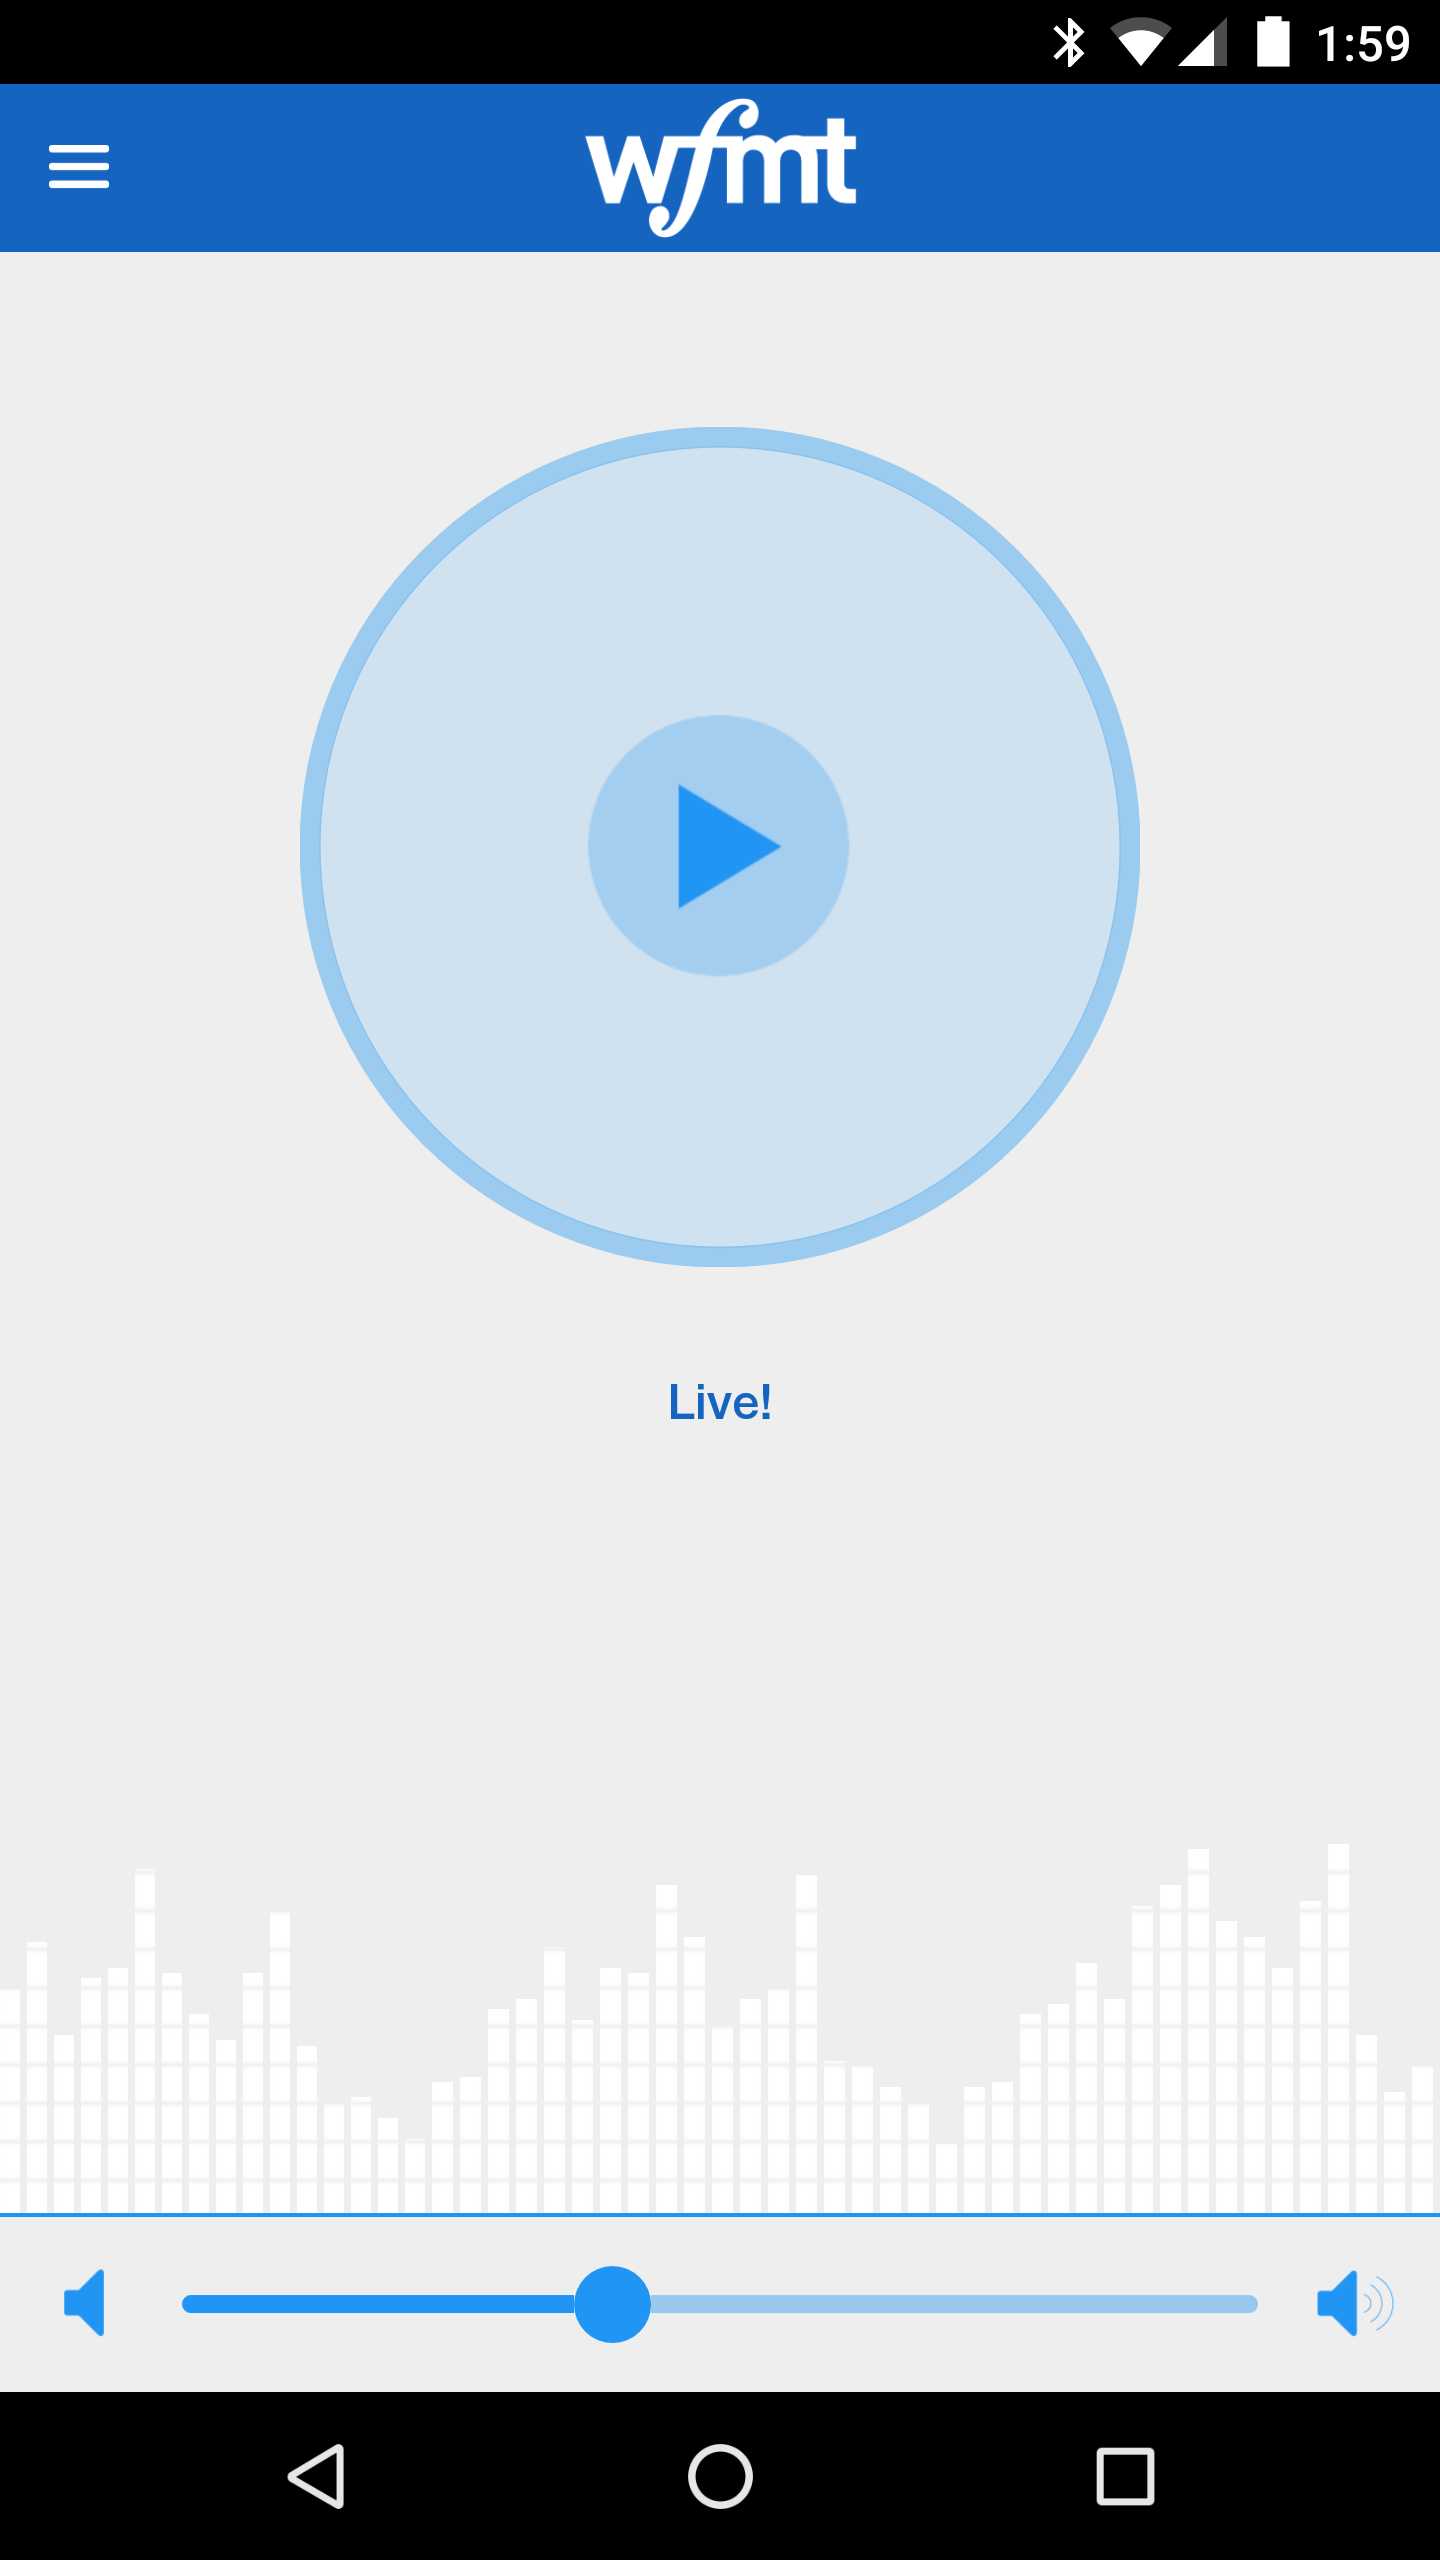 WFMT Android app live stream